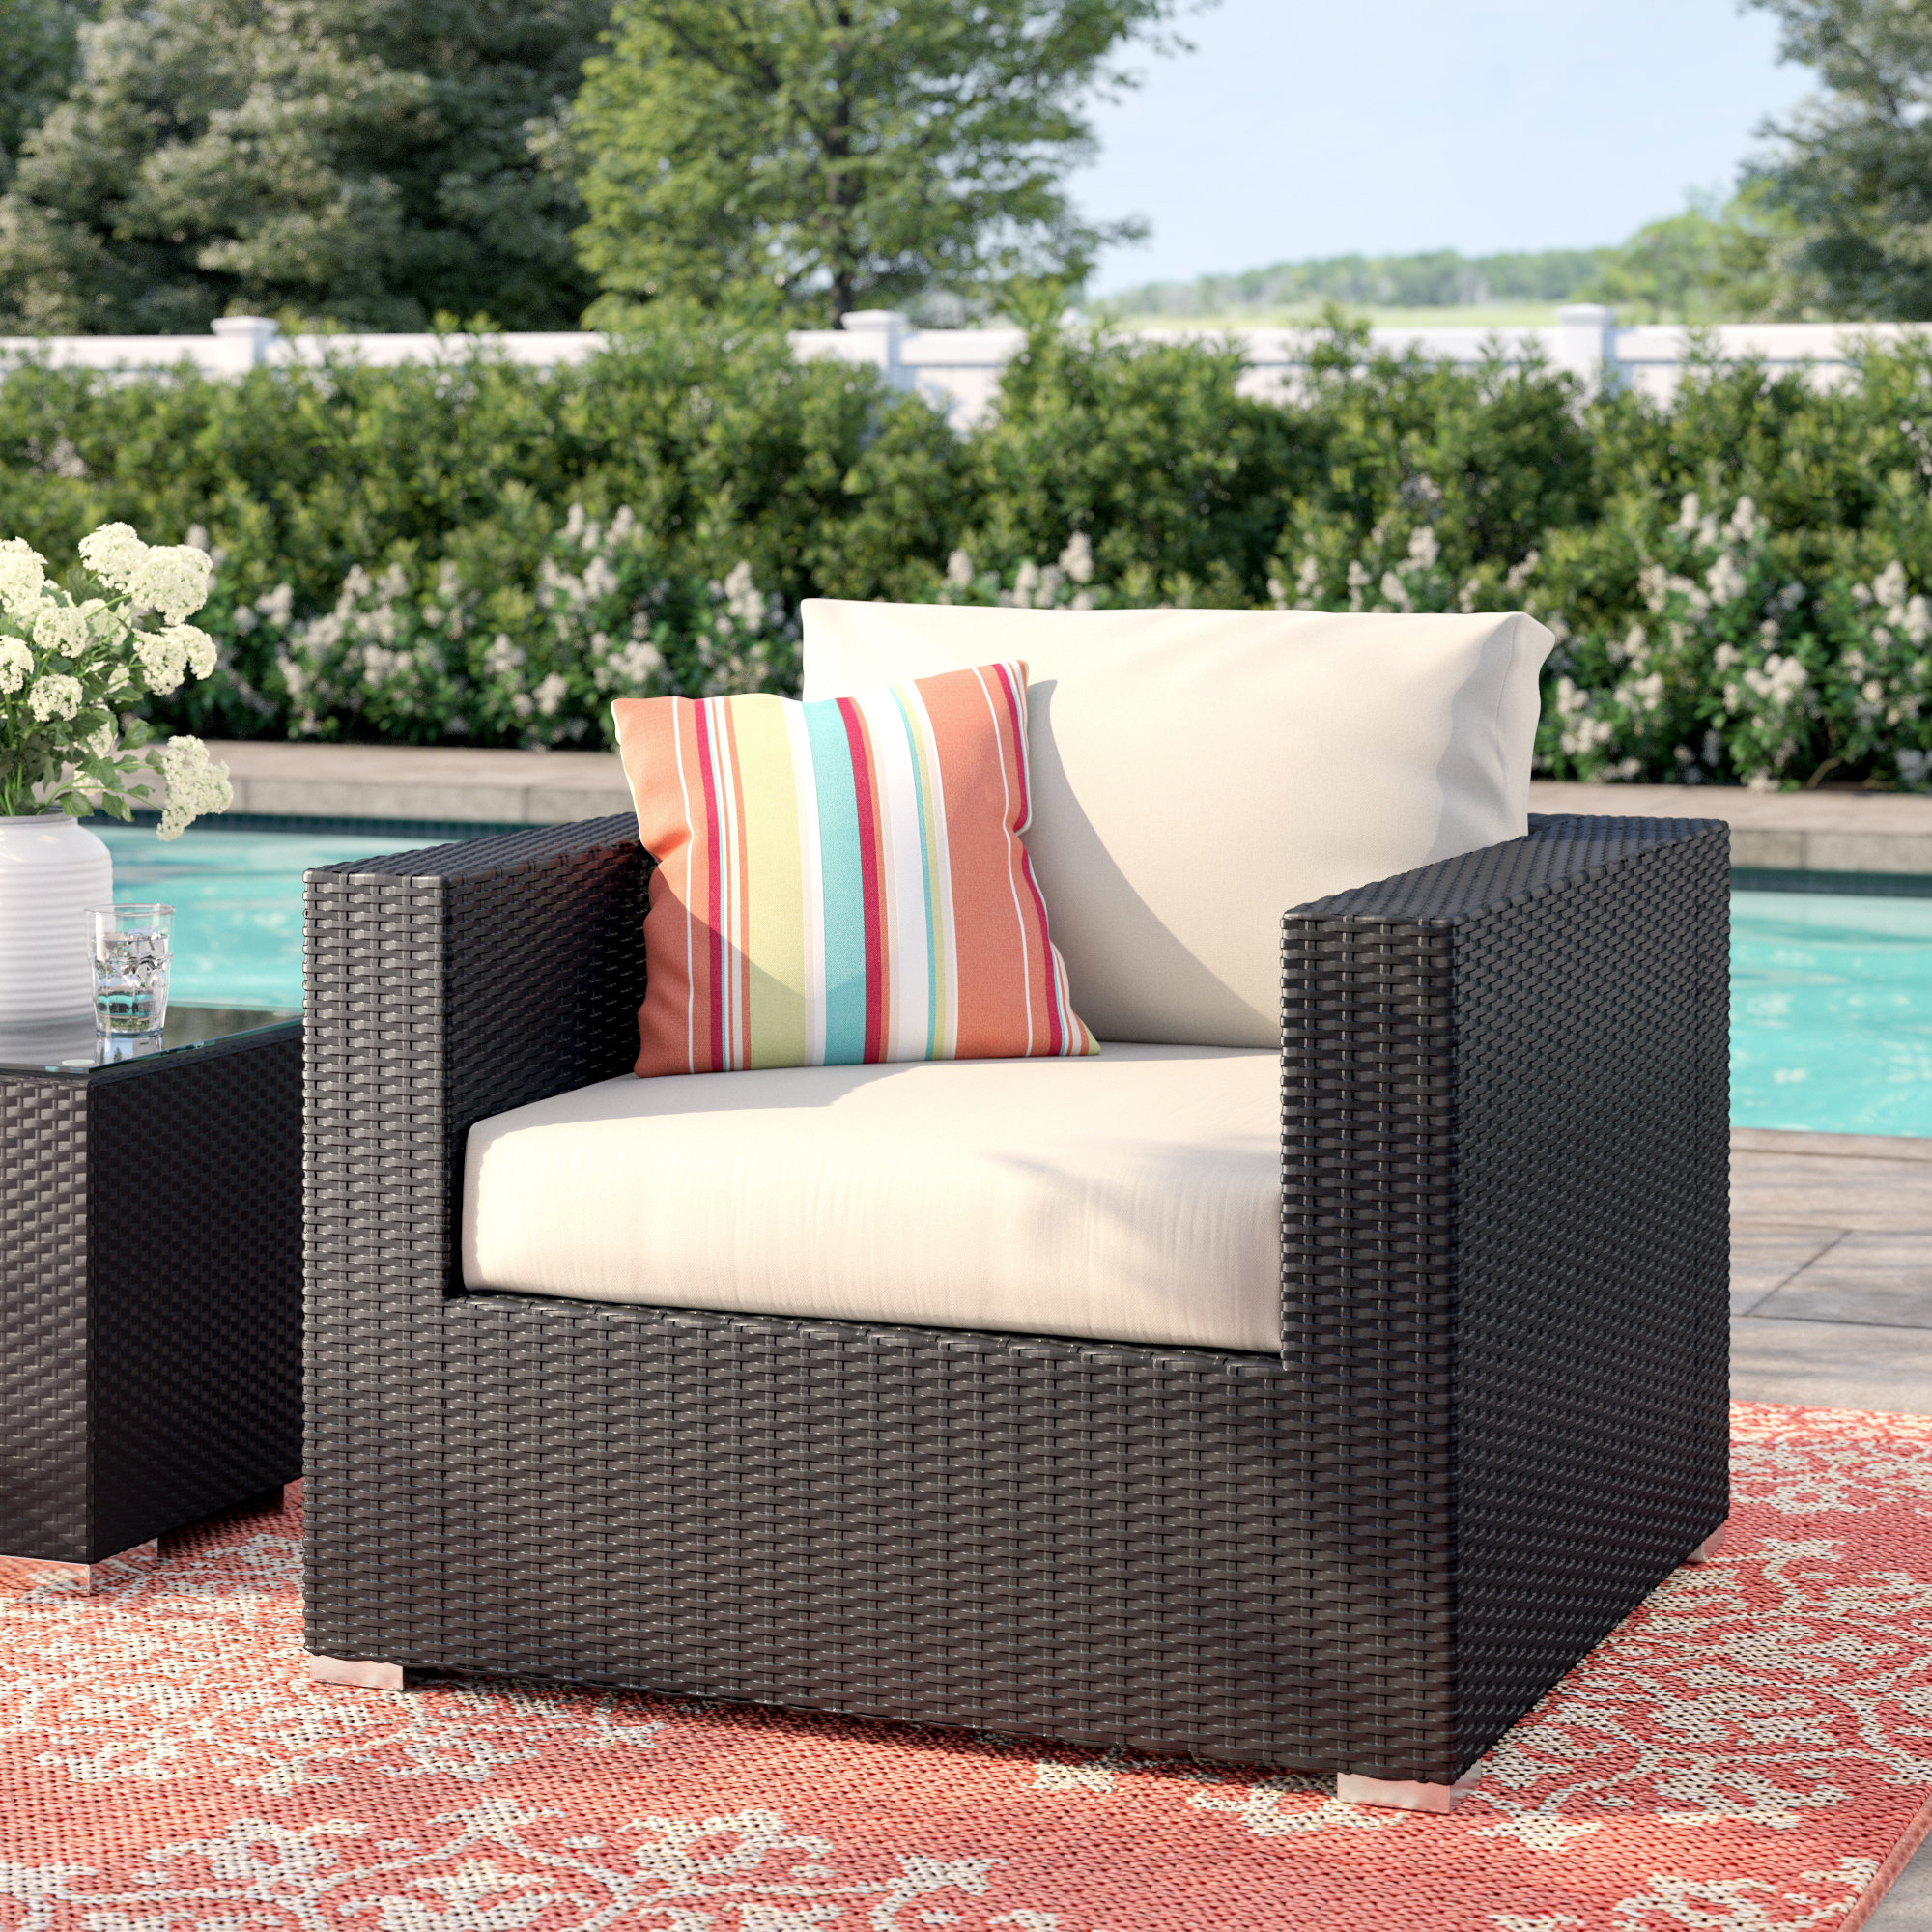 2019 Brentwood Patio Chair With Cushions Pertaining To Brentwood Patio Sofas With Cushions (View 2 of 18)